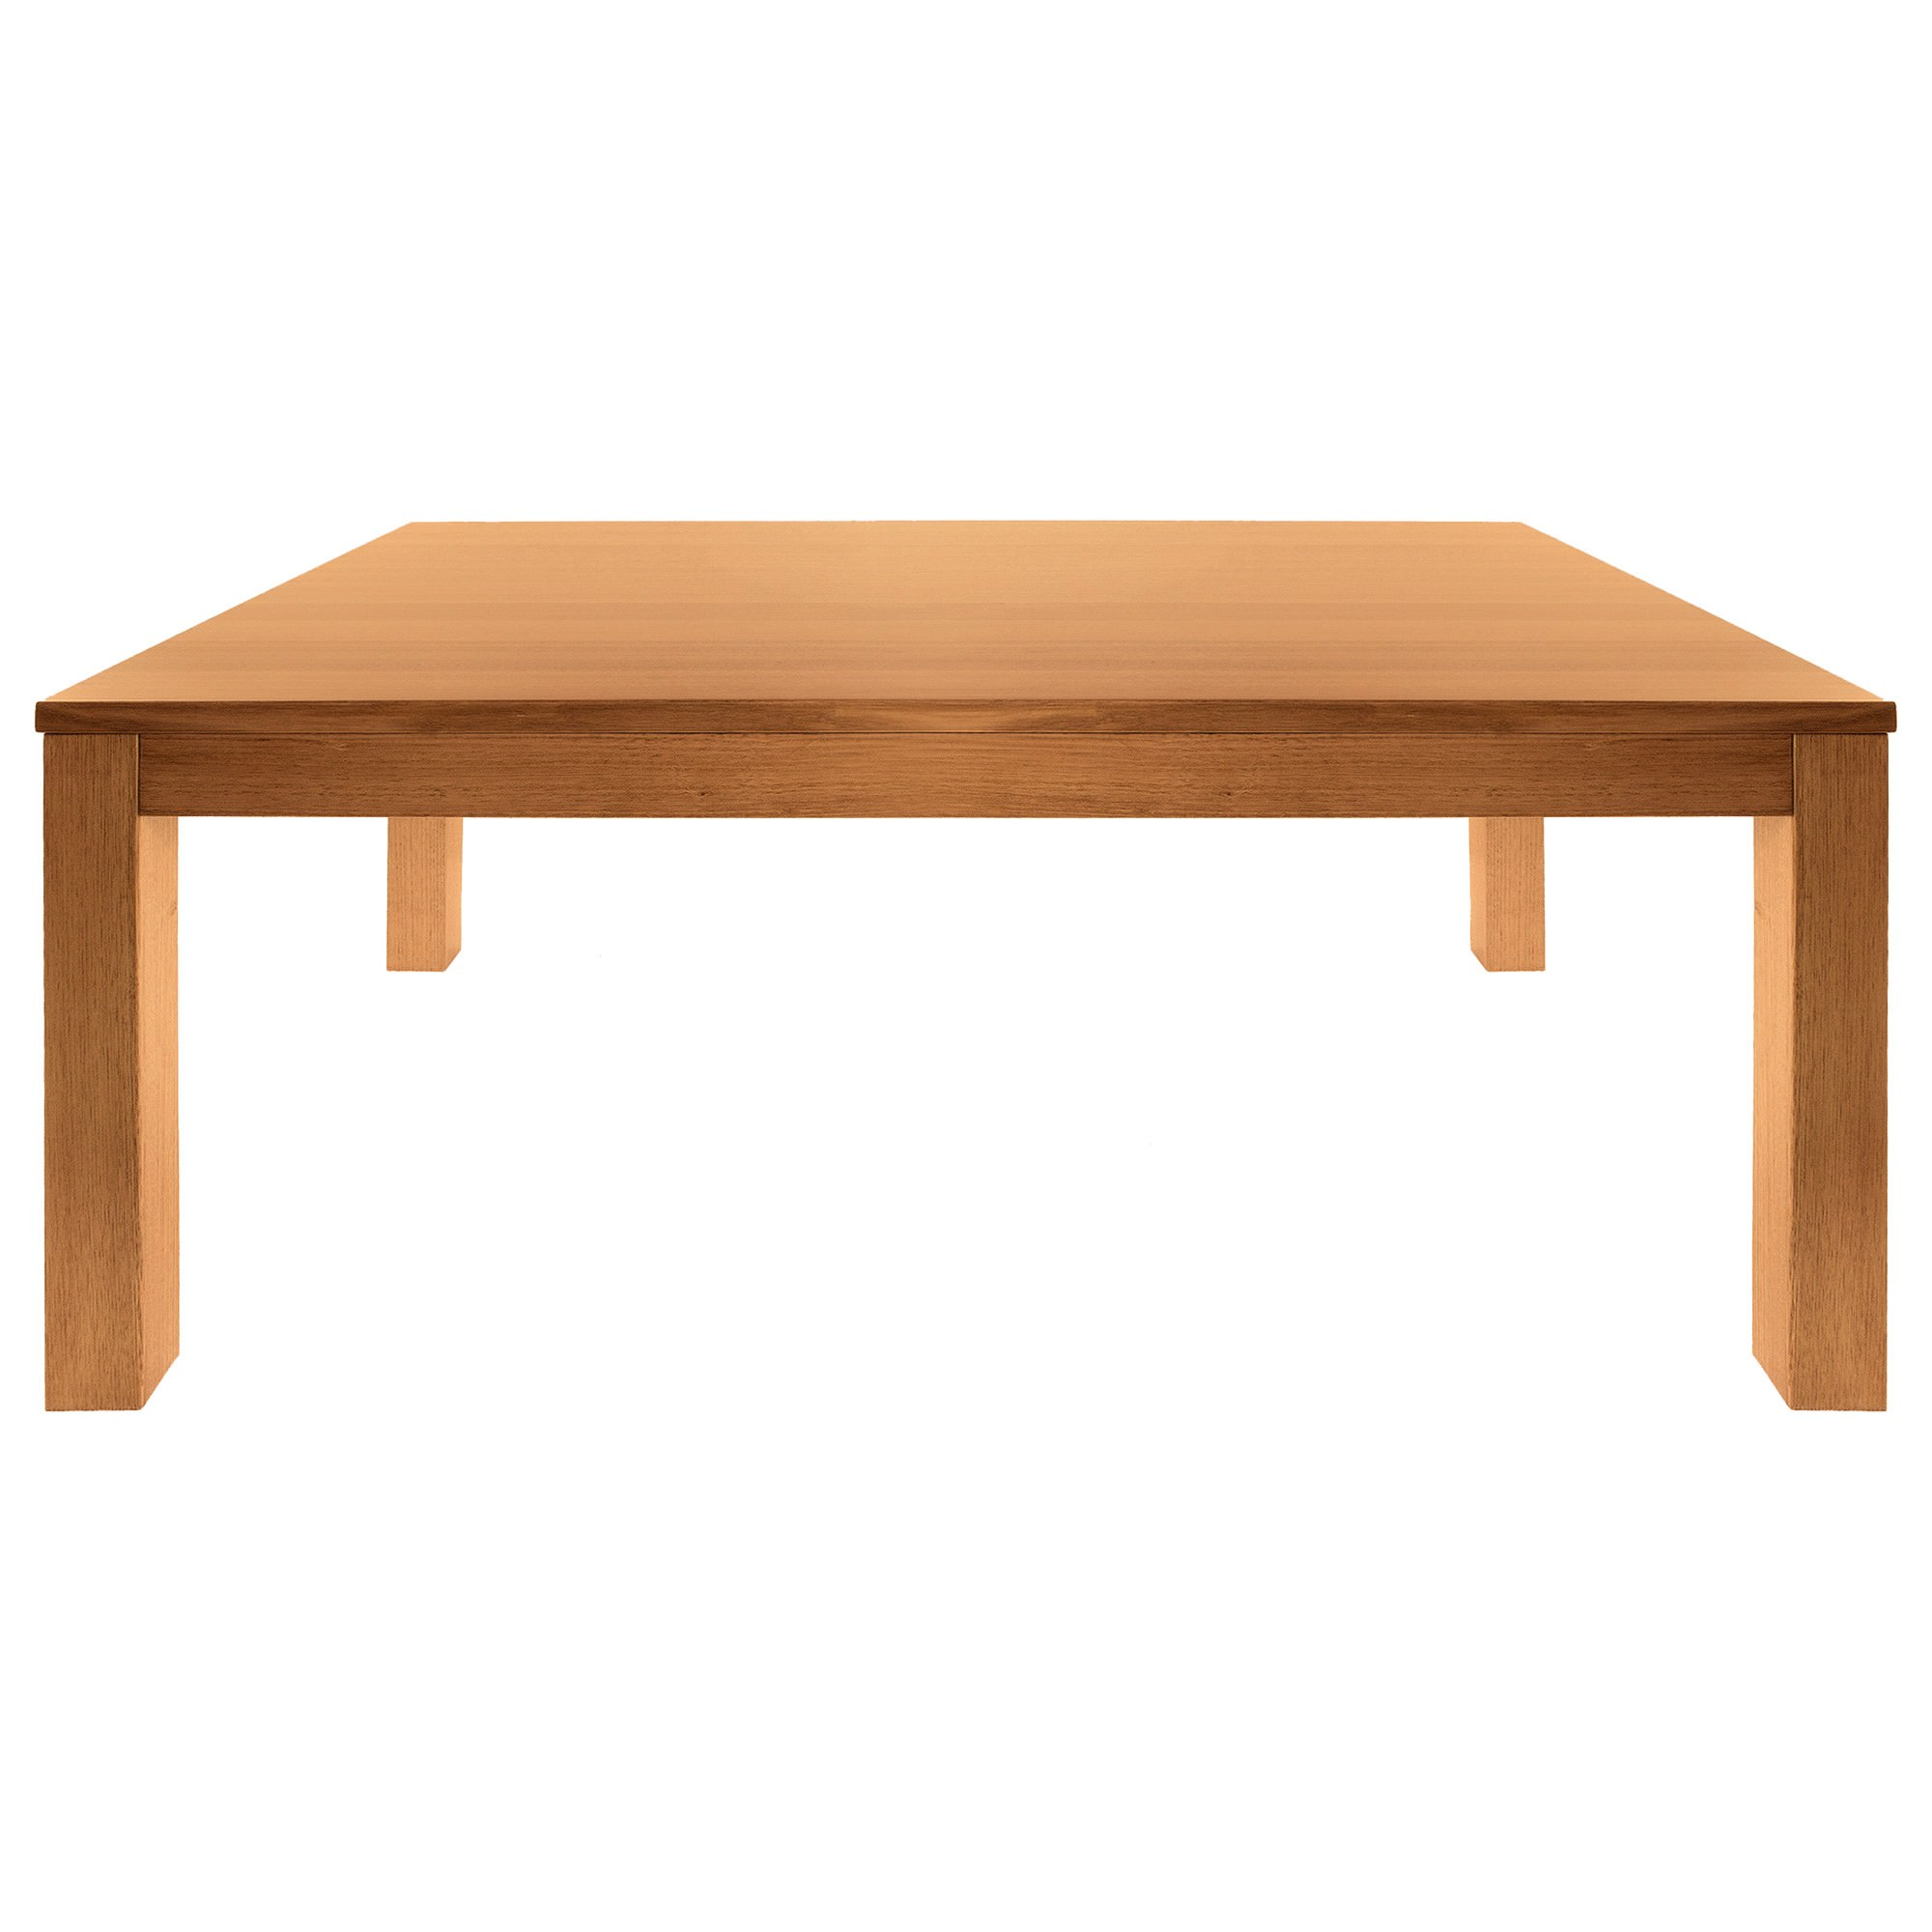 Moselia Tasmanian Oak Timber Dining Table, 180cm, Wheat